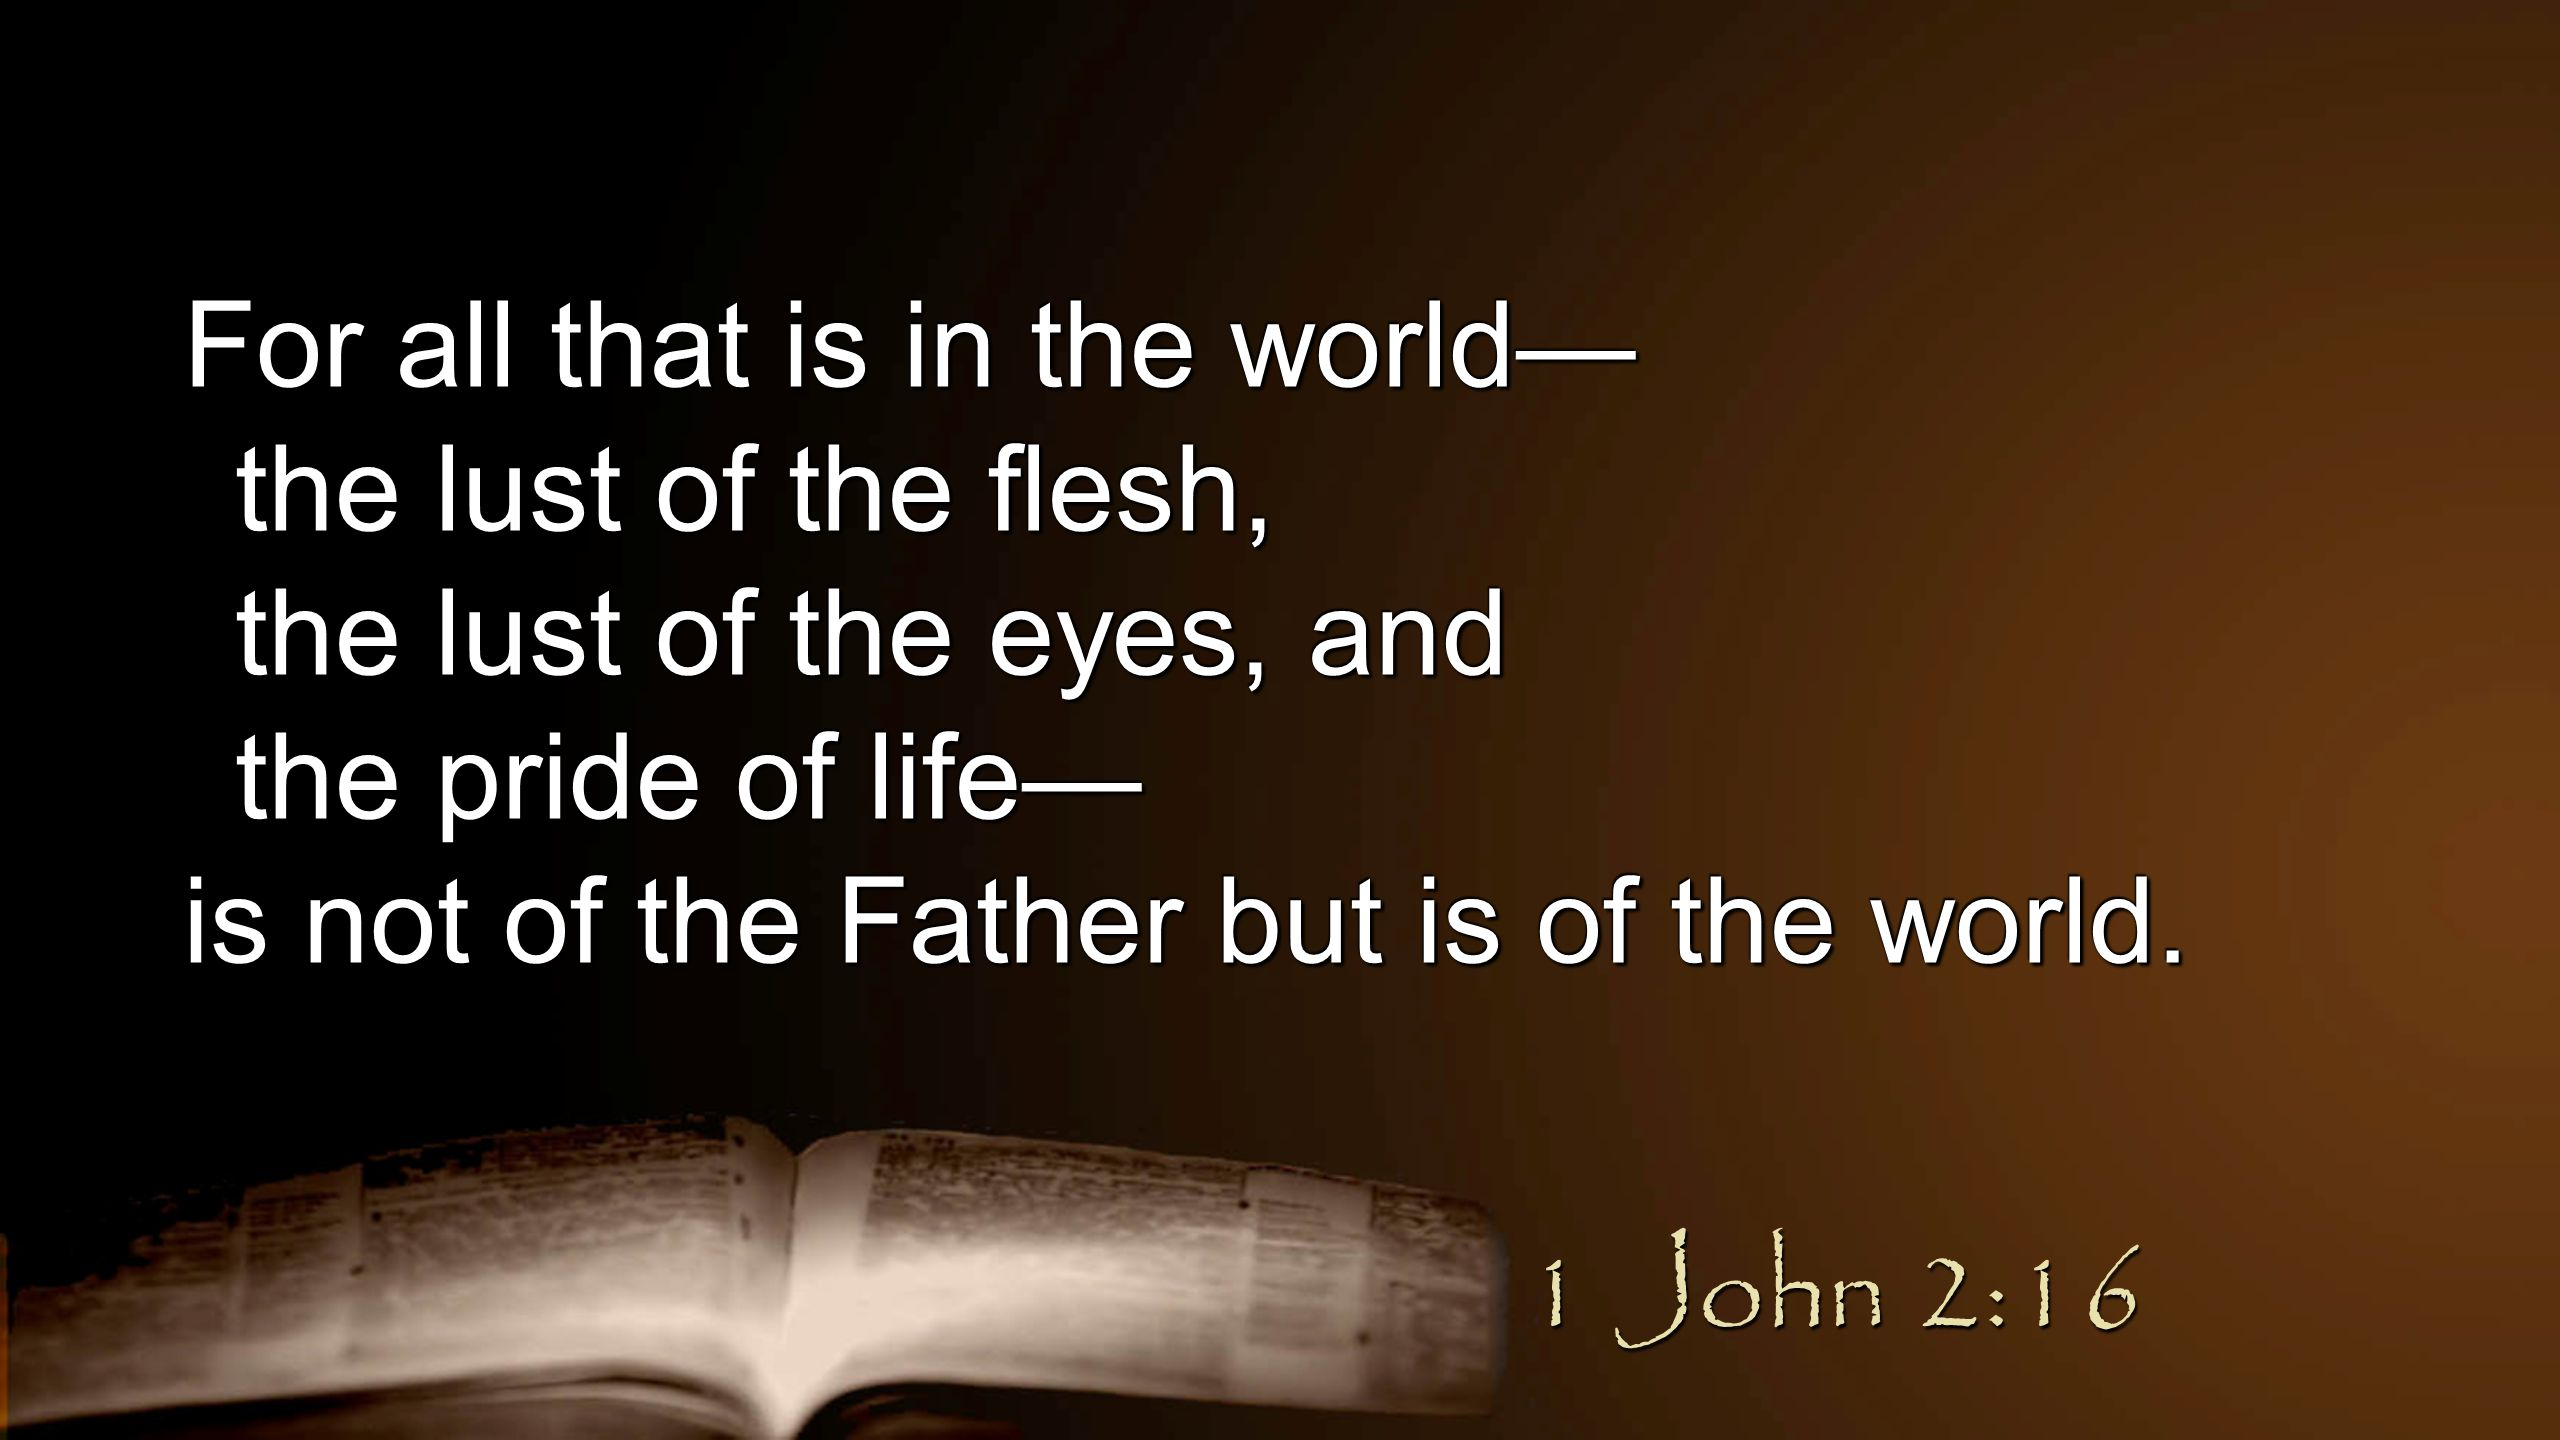 For all that is in the world— the lust of the flesh, the lust of the eyes, and the pride of life— is not of the Father but is of the world.